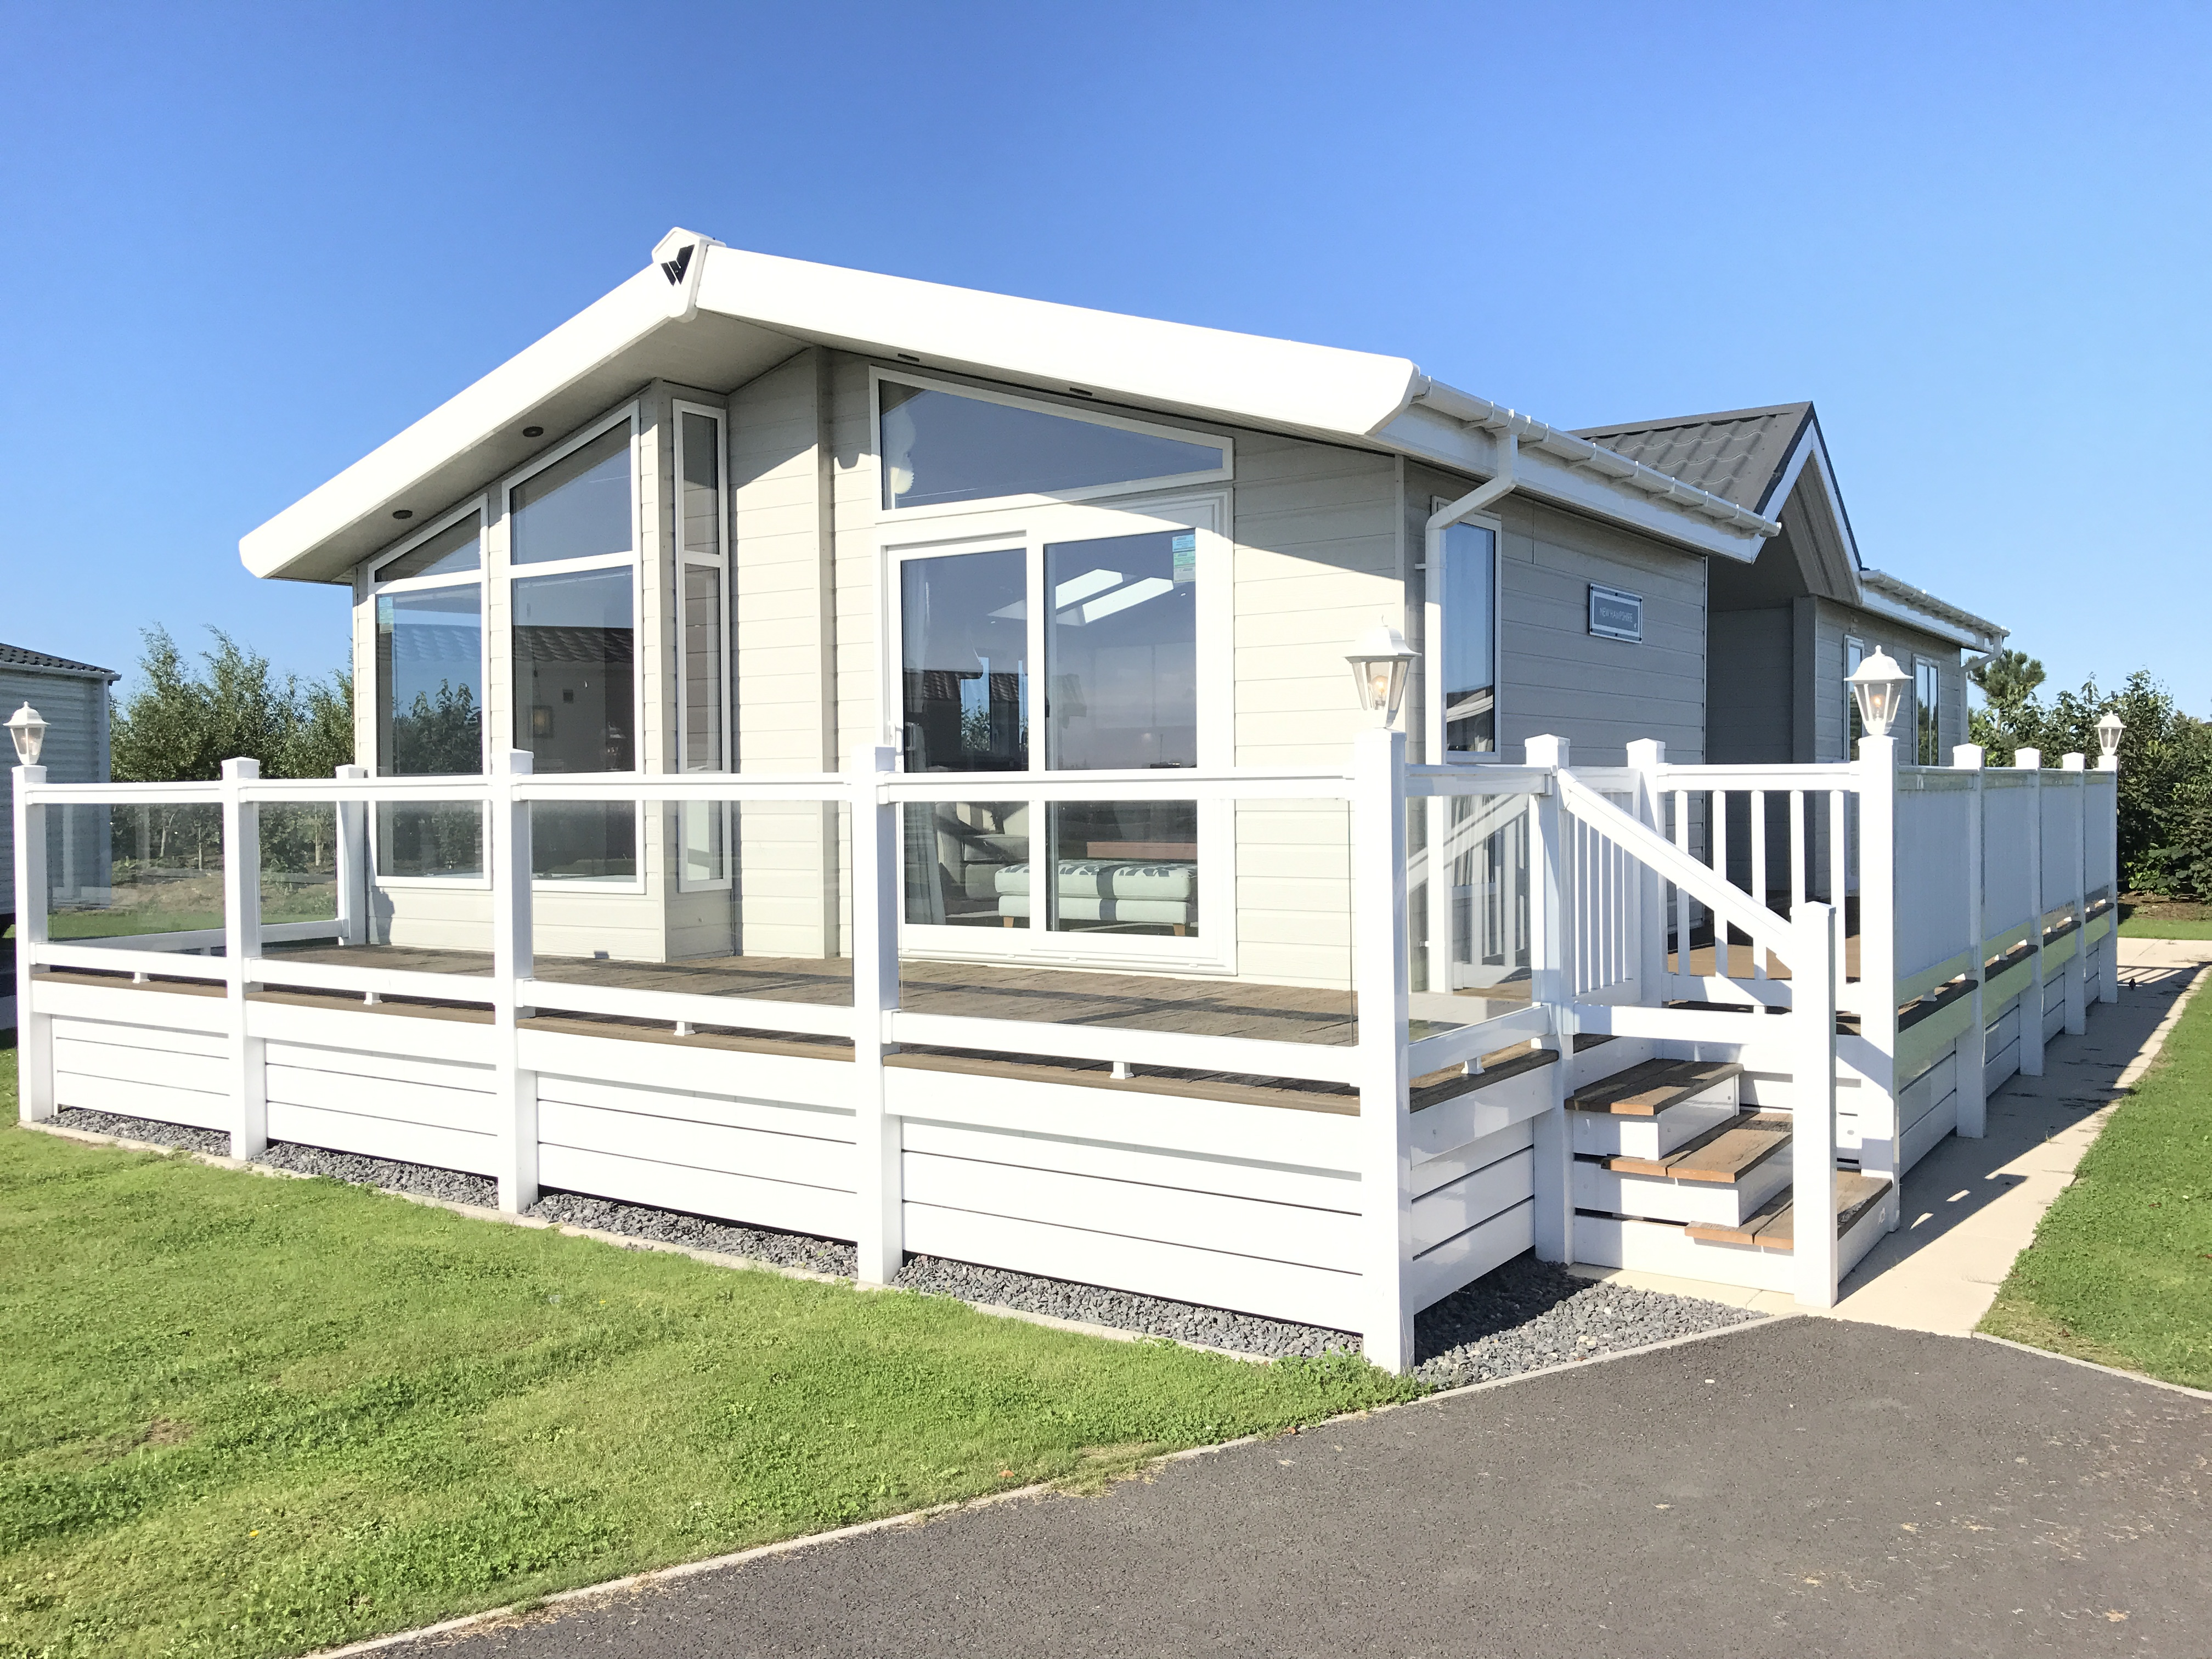 2016 Willerby New Hampshire Lodge 42 x 20 x 2 Bedrooms, DG, GCH, Decking